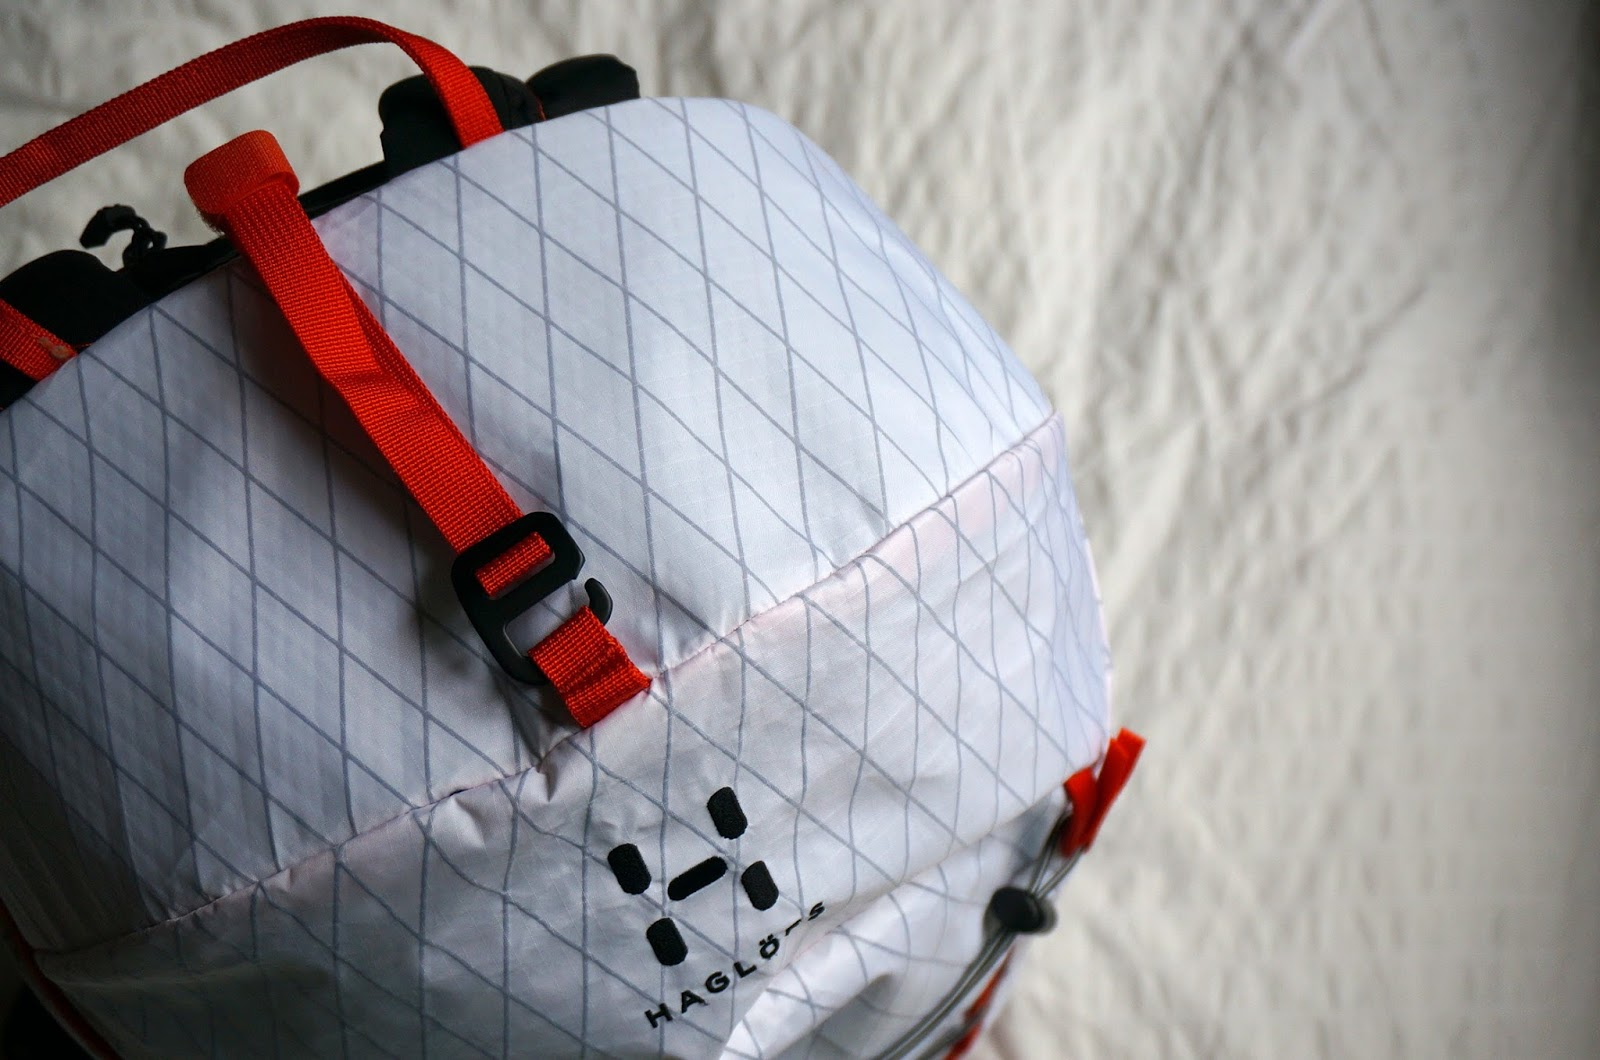 Runssel checked hagl fs roc helios 25 backpack - Div onclick href ...